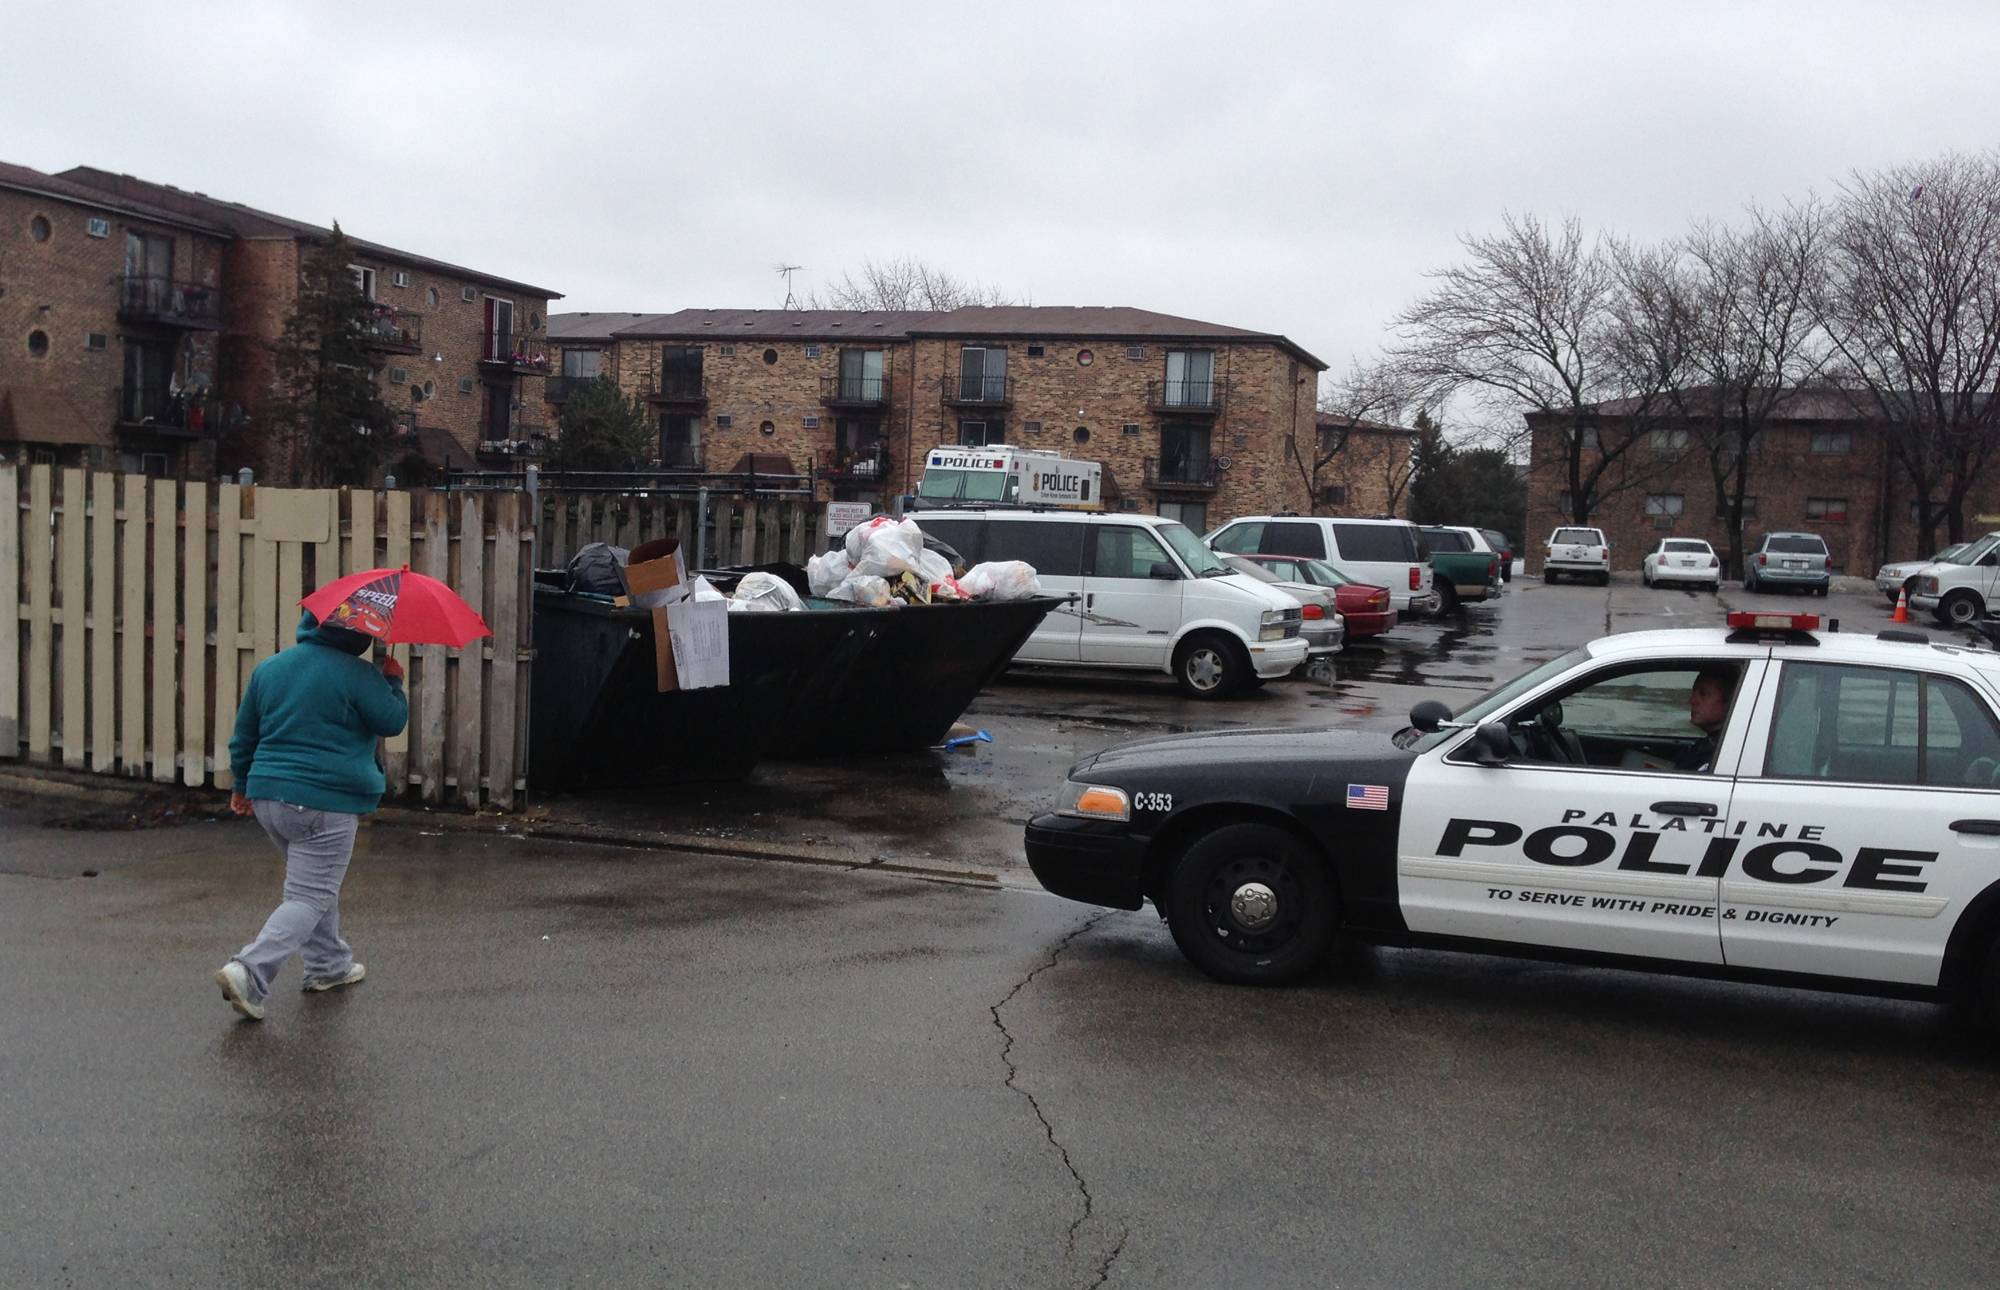 Palatine police were posted at the Baldwin Green Apartments Wednesday as investigators searched for answers in the fatal shootings of a 15-year-old boy and his 38-year-old father shortly after midnight.